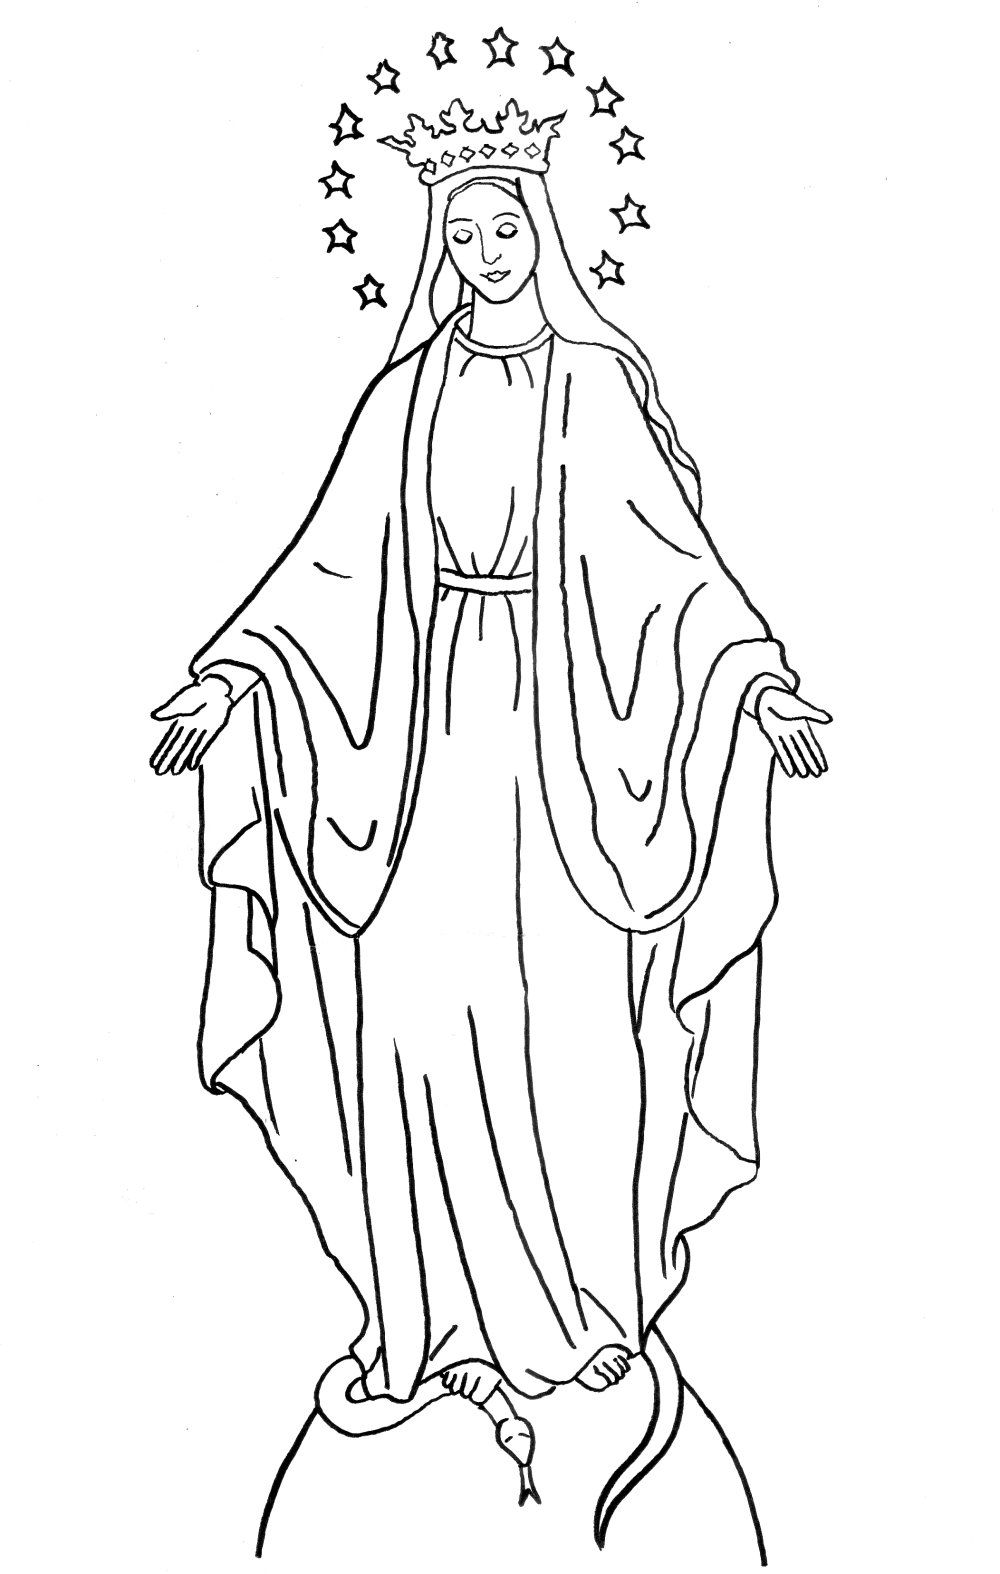 Coloring Page Immaculate Conception for Solemnity of the Immaculate.